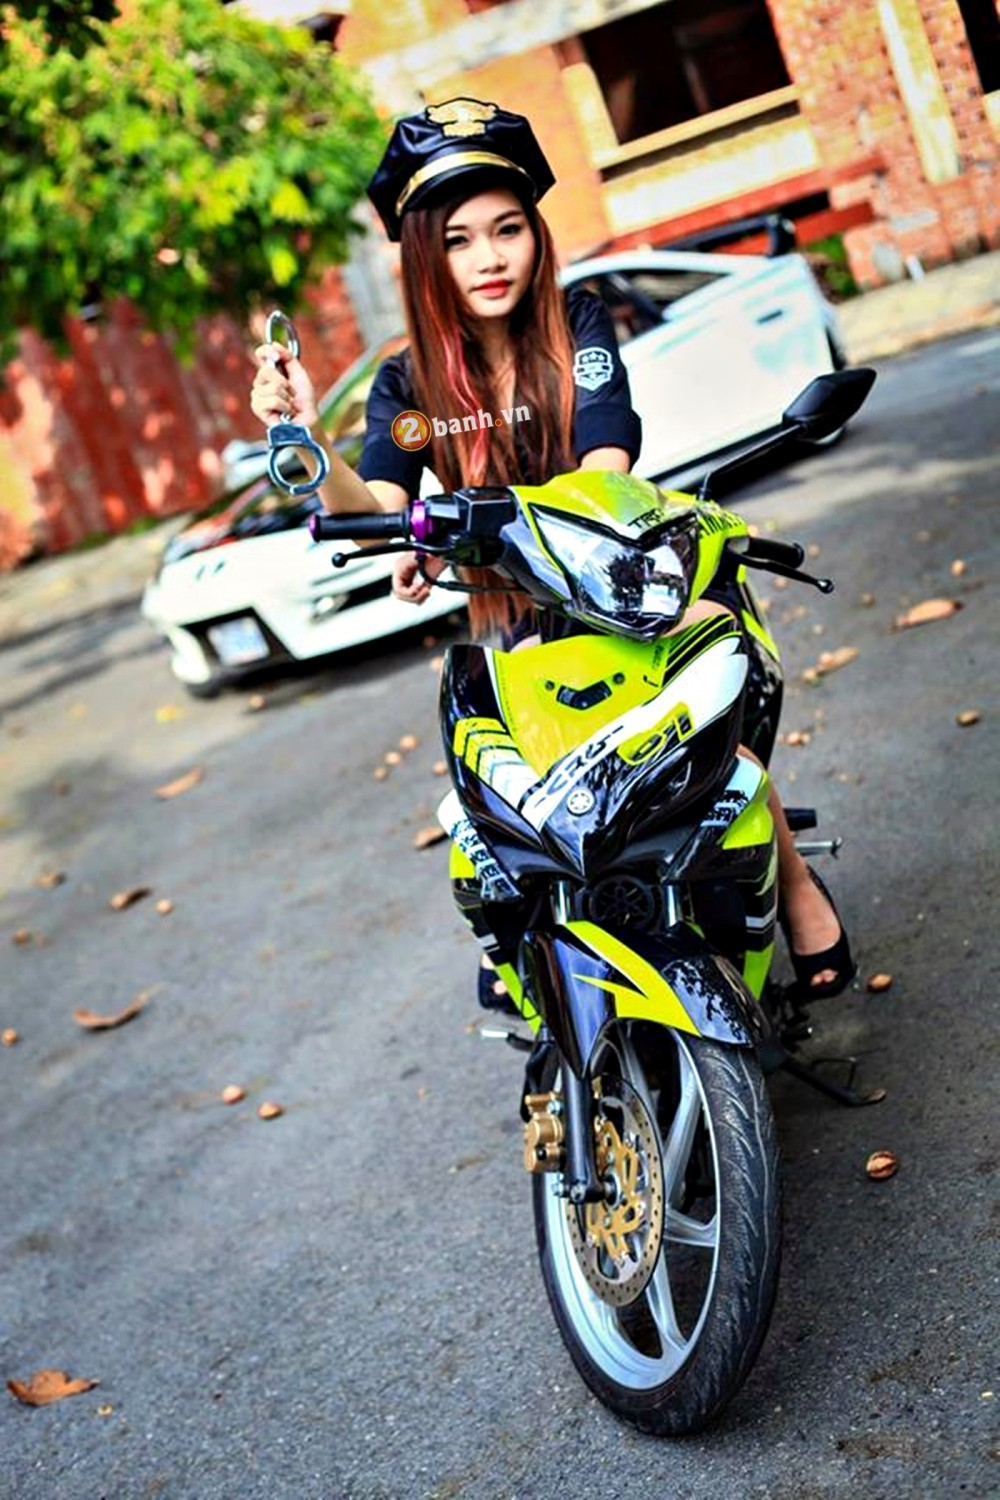 Exciter phien ban Green TRD Legendary do dang cung nu canh sat - 5